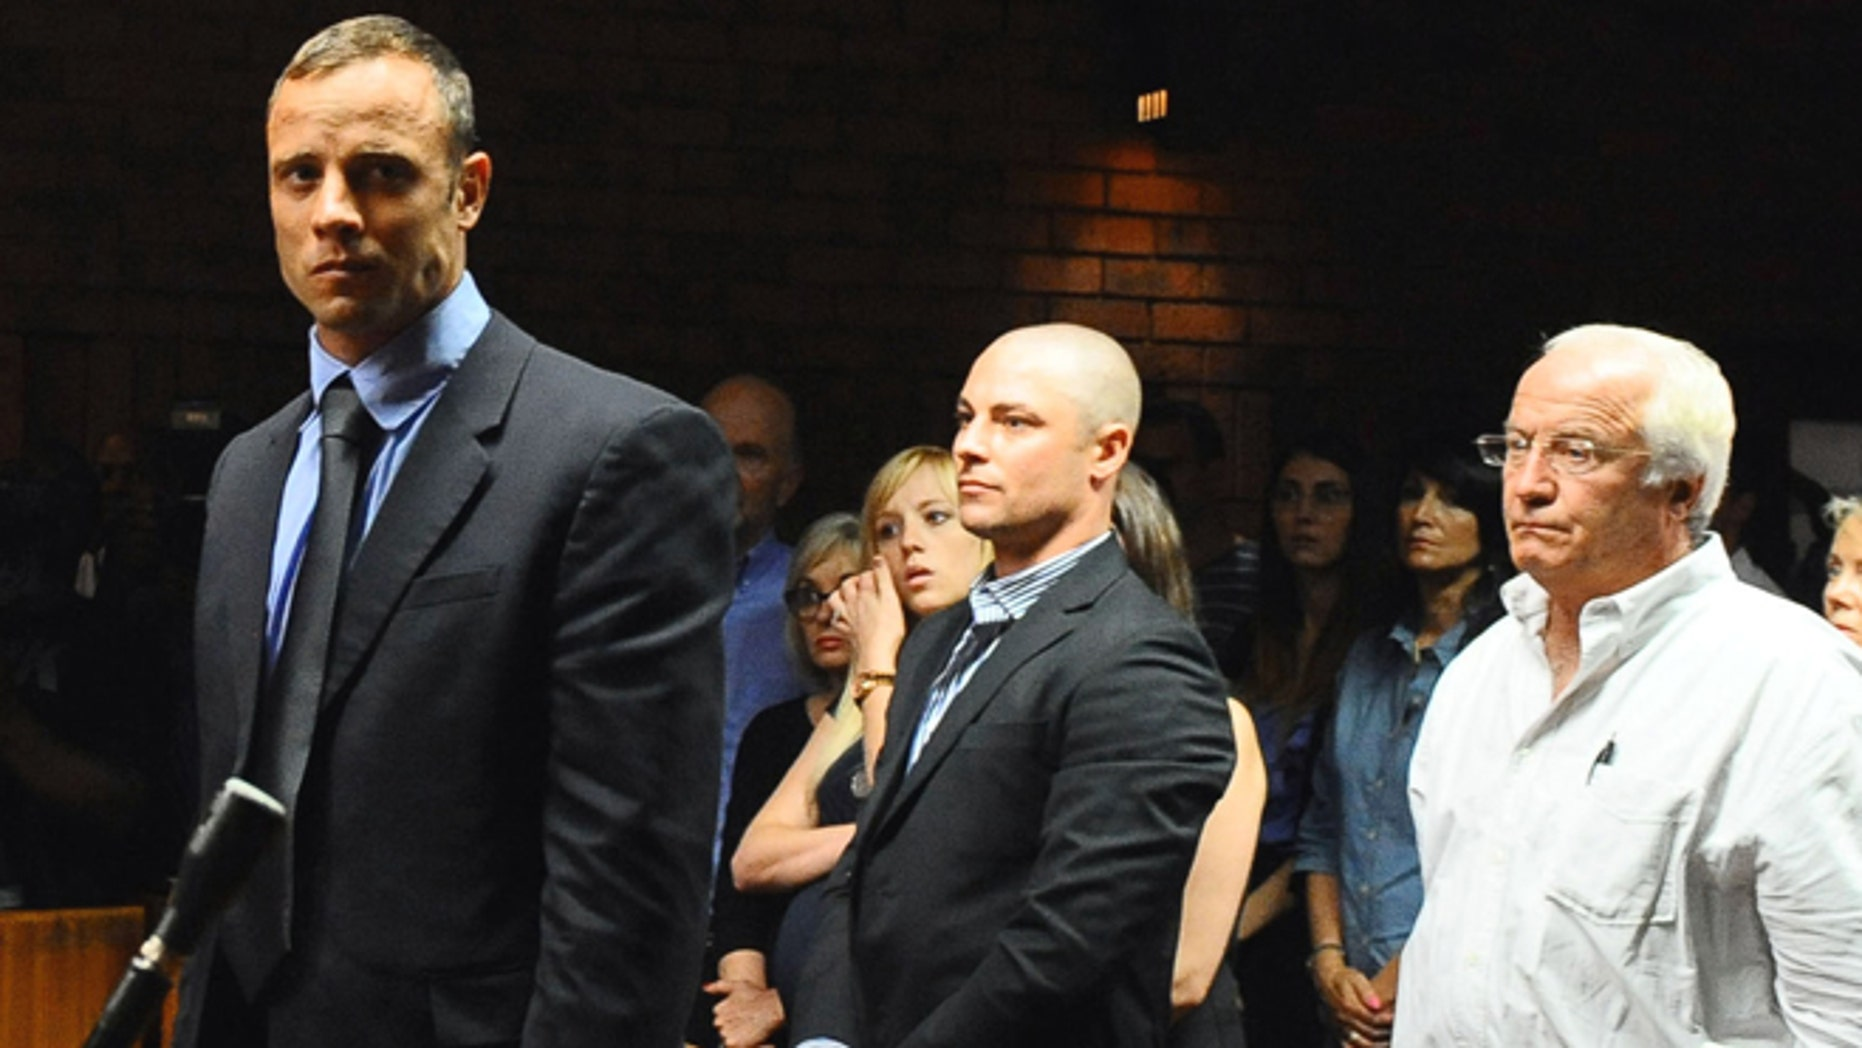 Feb. 19, 2013: Olympian Oscar Pistorius stands following his bail hearing, as his brother Carl, center, and father Henke look on, in Pretoria, South Africa.